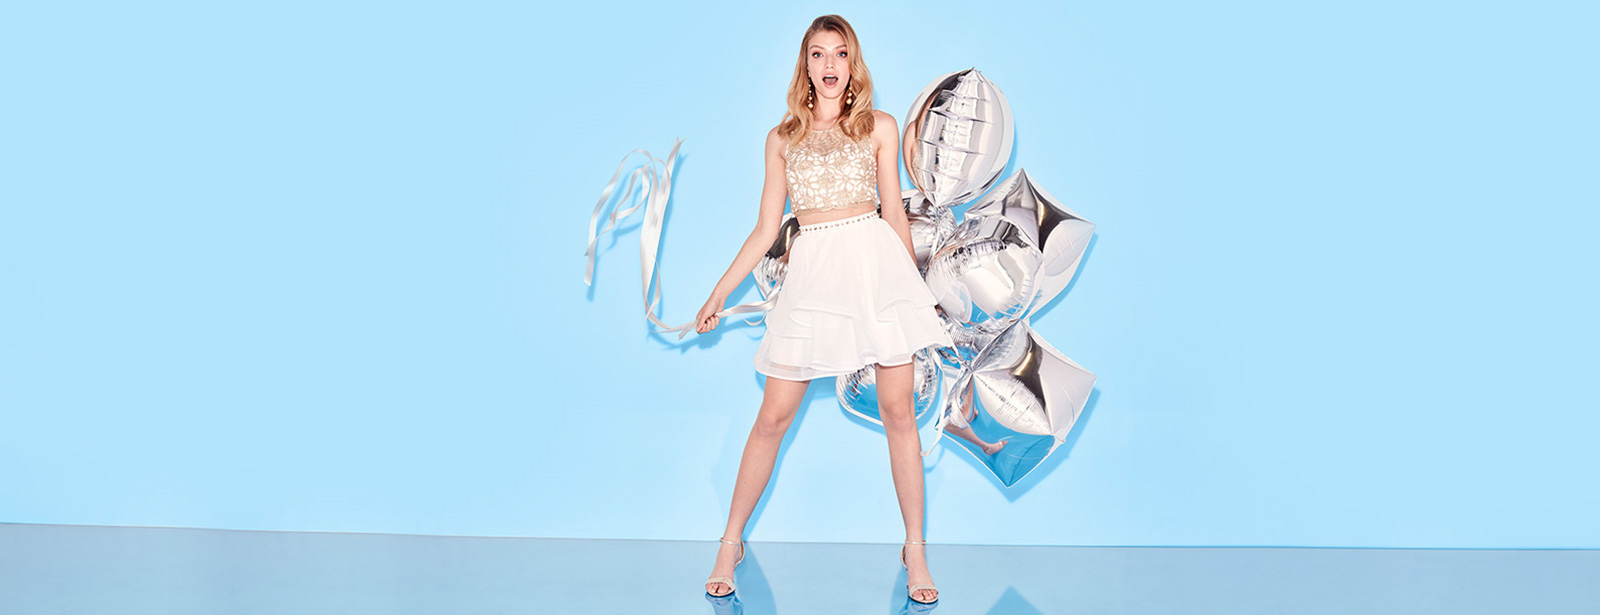 Homecoming Girl in white skirt and crop top holding silver balloons